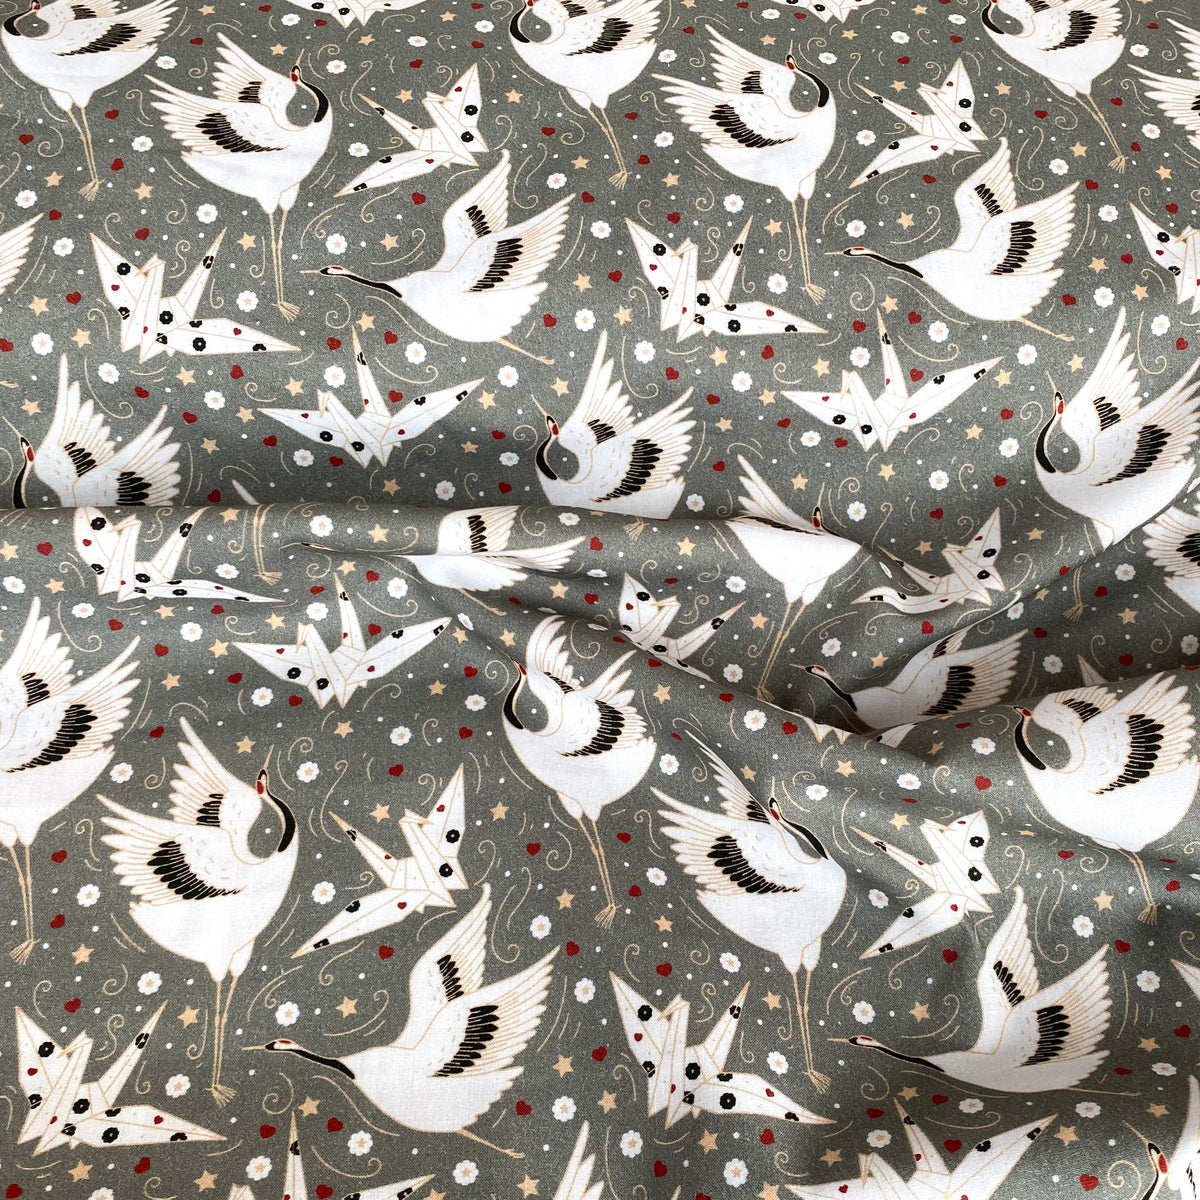 Christmas Origami birds grey 100% cotton fabric, 149cm wide sold per 1/2 metre OEKO-TEX